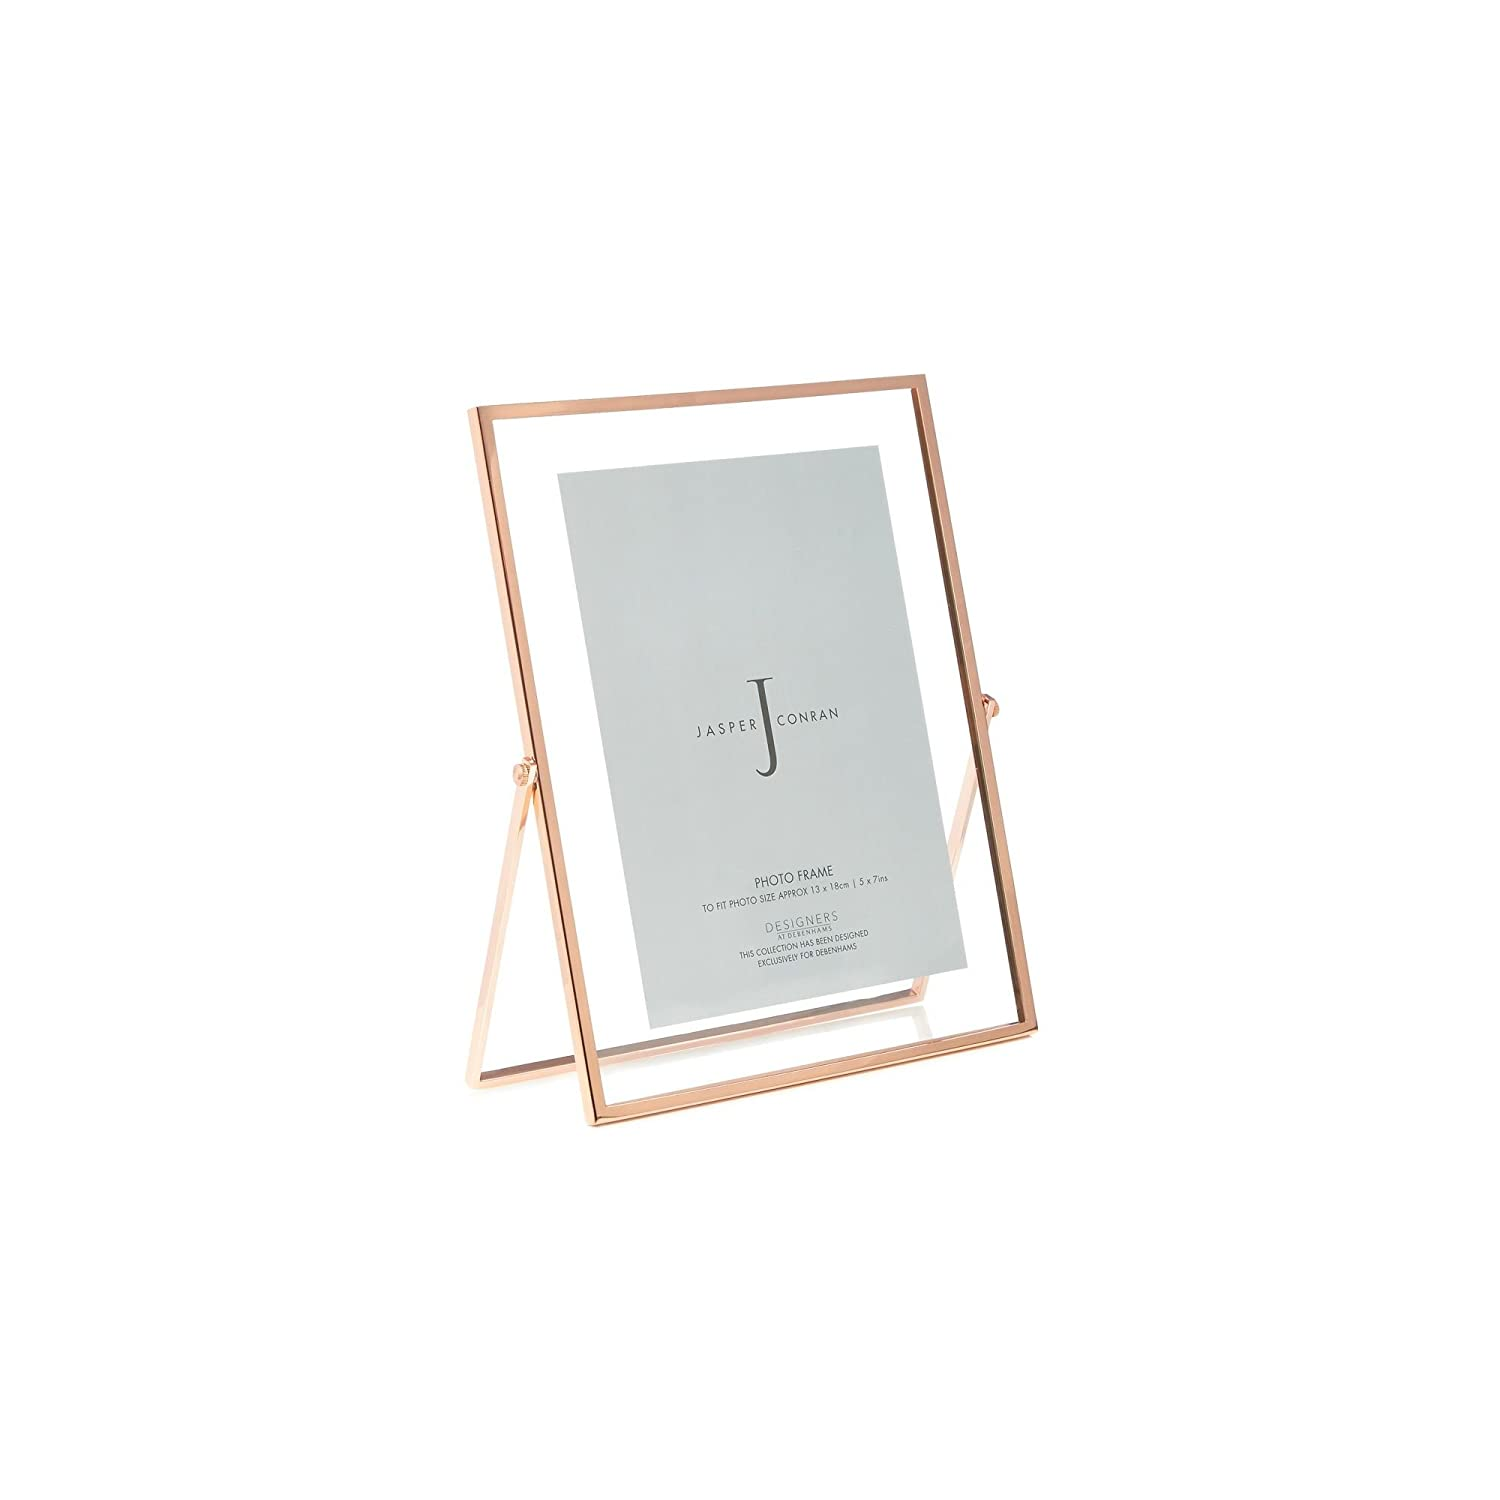 9b1e290c612 Debenhams J By Jasper Conran Rose Gold Hinged Photo Frame 4 X 6 Inches  J  by Jasper Conran  Amazon.co.uk  Kitchen   Home